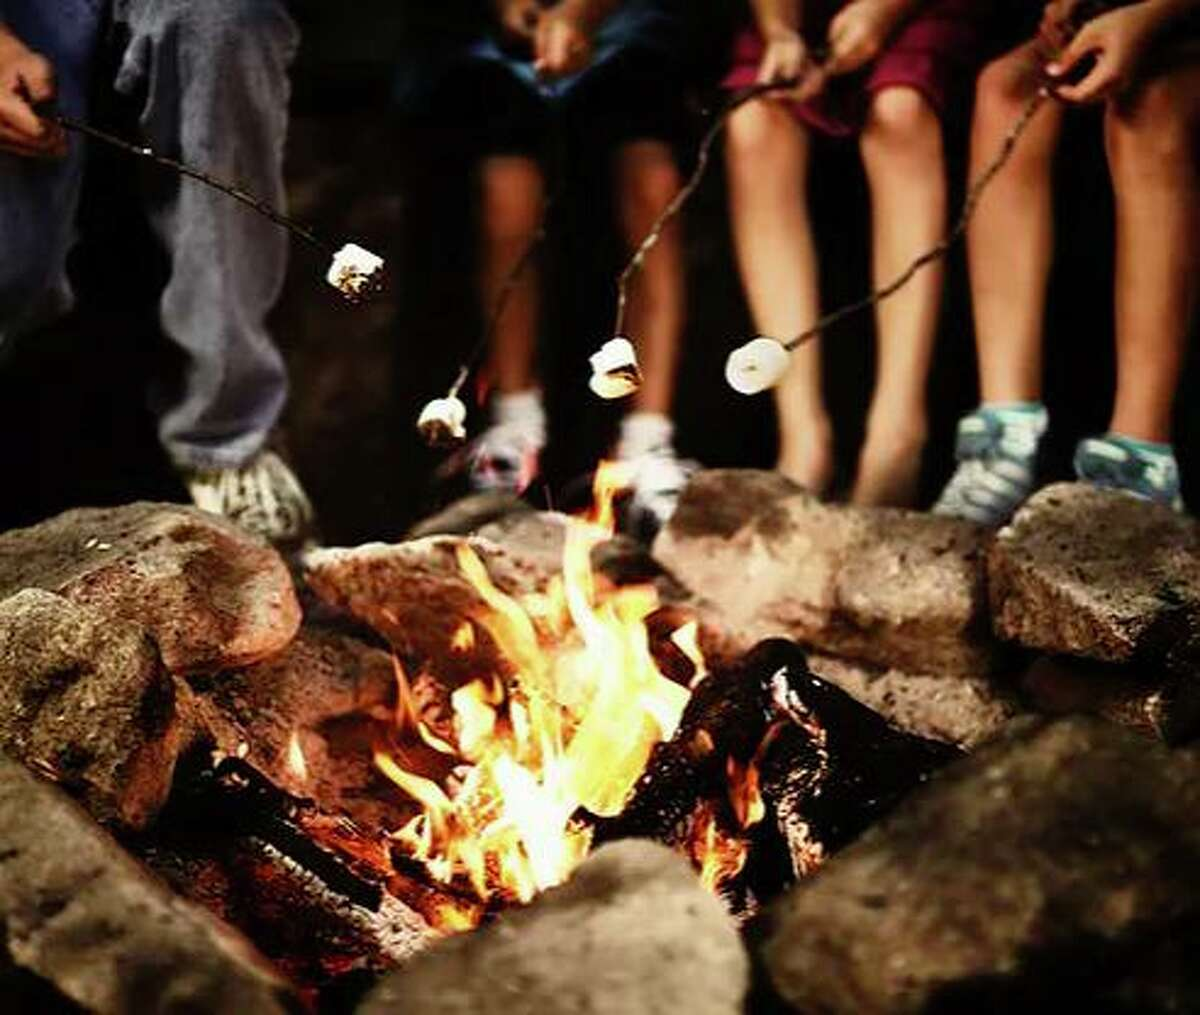 The Woodcock Nature Center in Wilton is having after dinner smores on Sunday, July 25, and more, from 6 to 7:30 p.m.